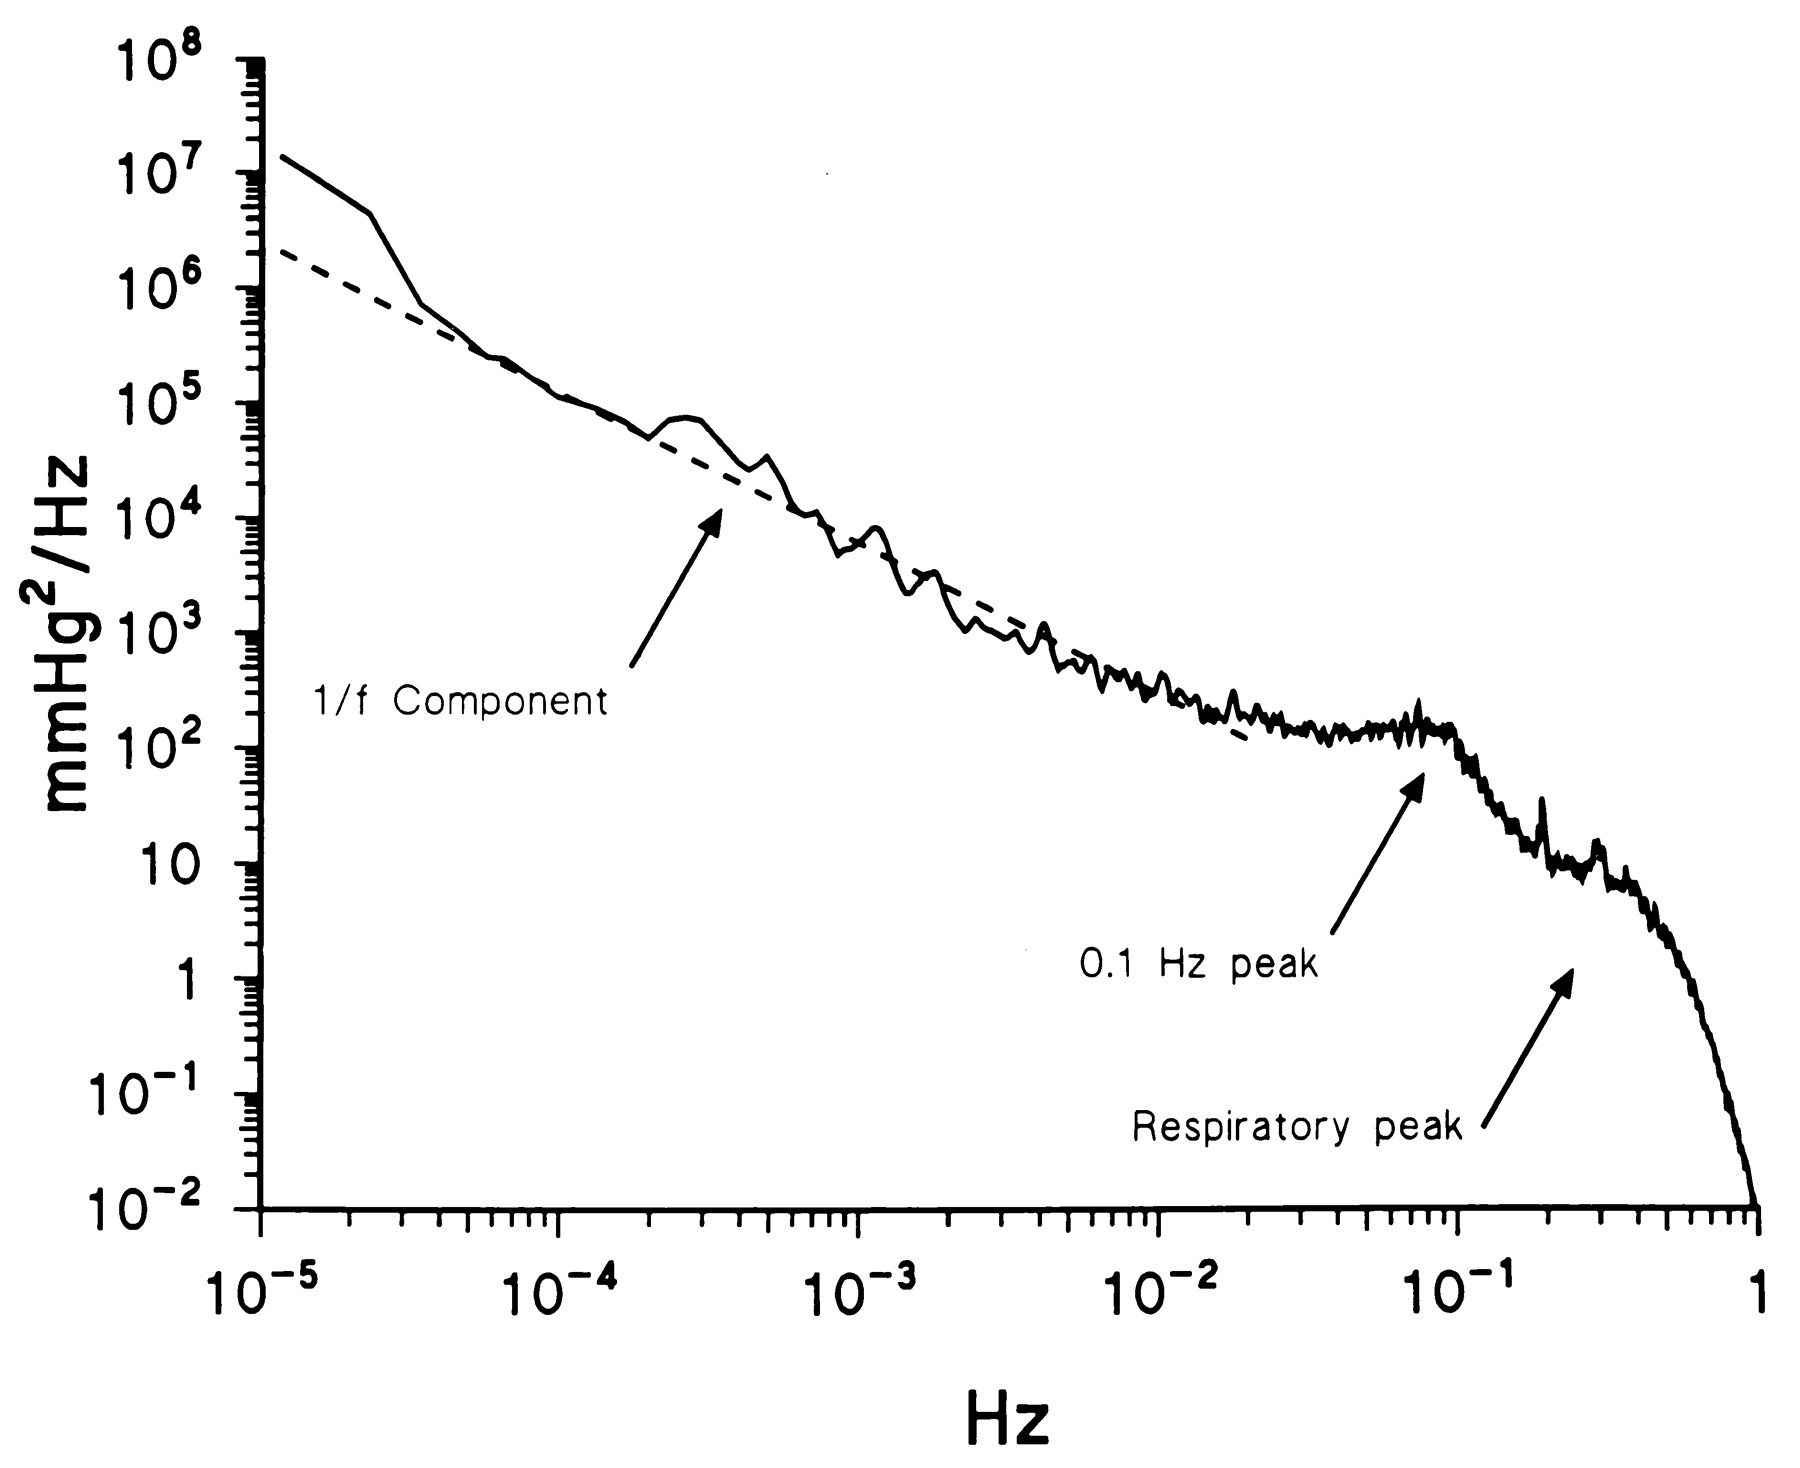 Spectral Analysis of Blood Pressure and Heart Rate